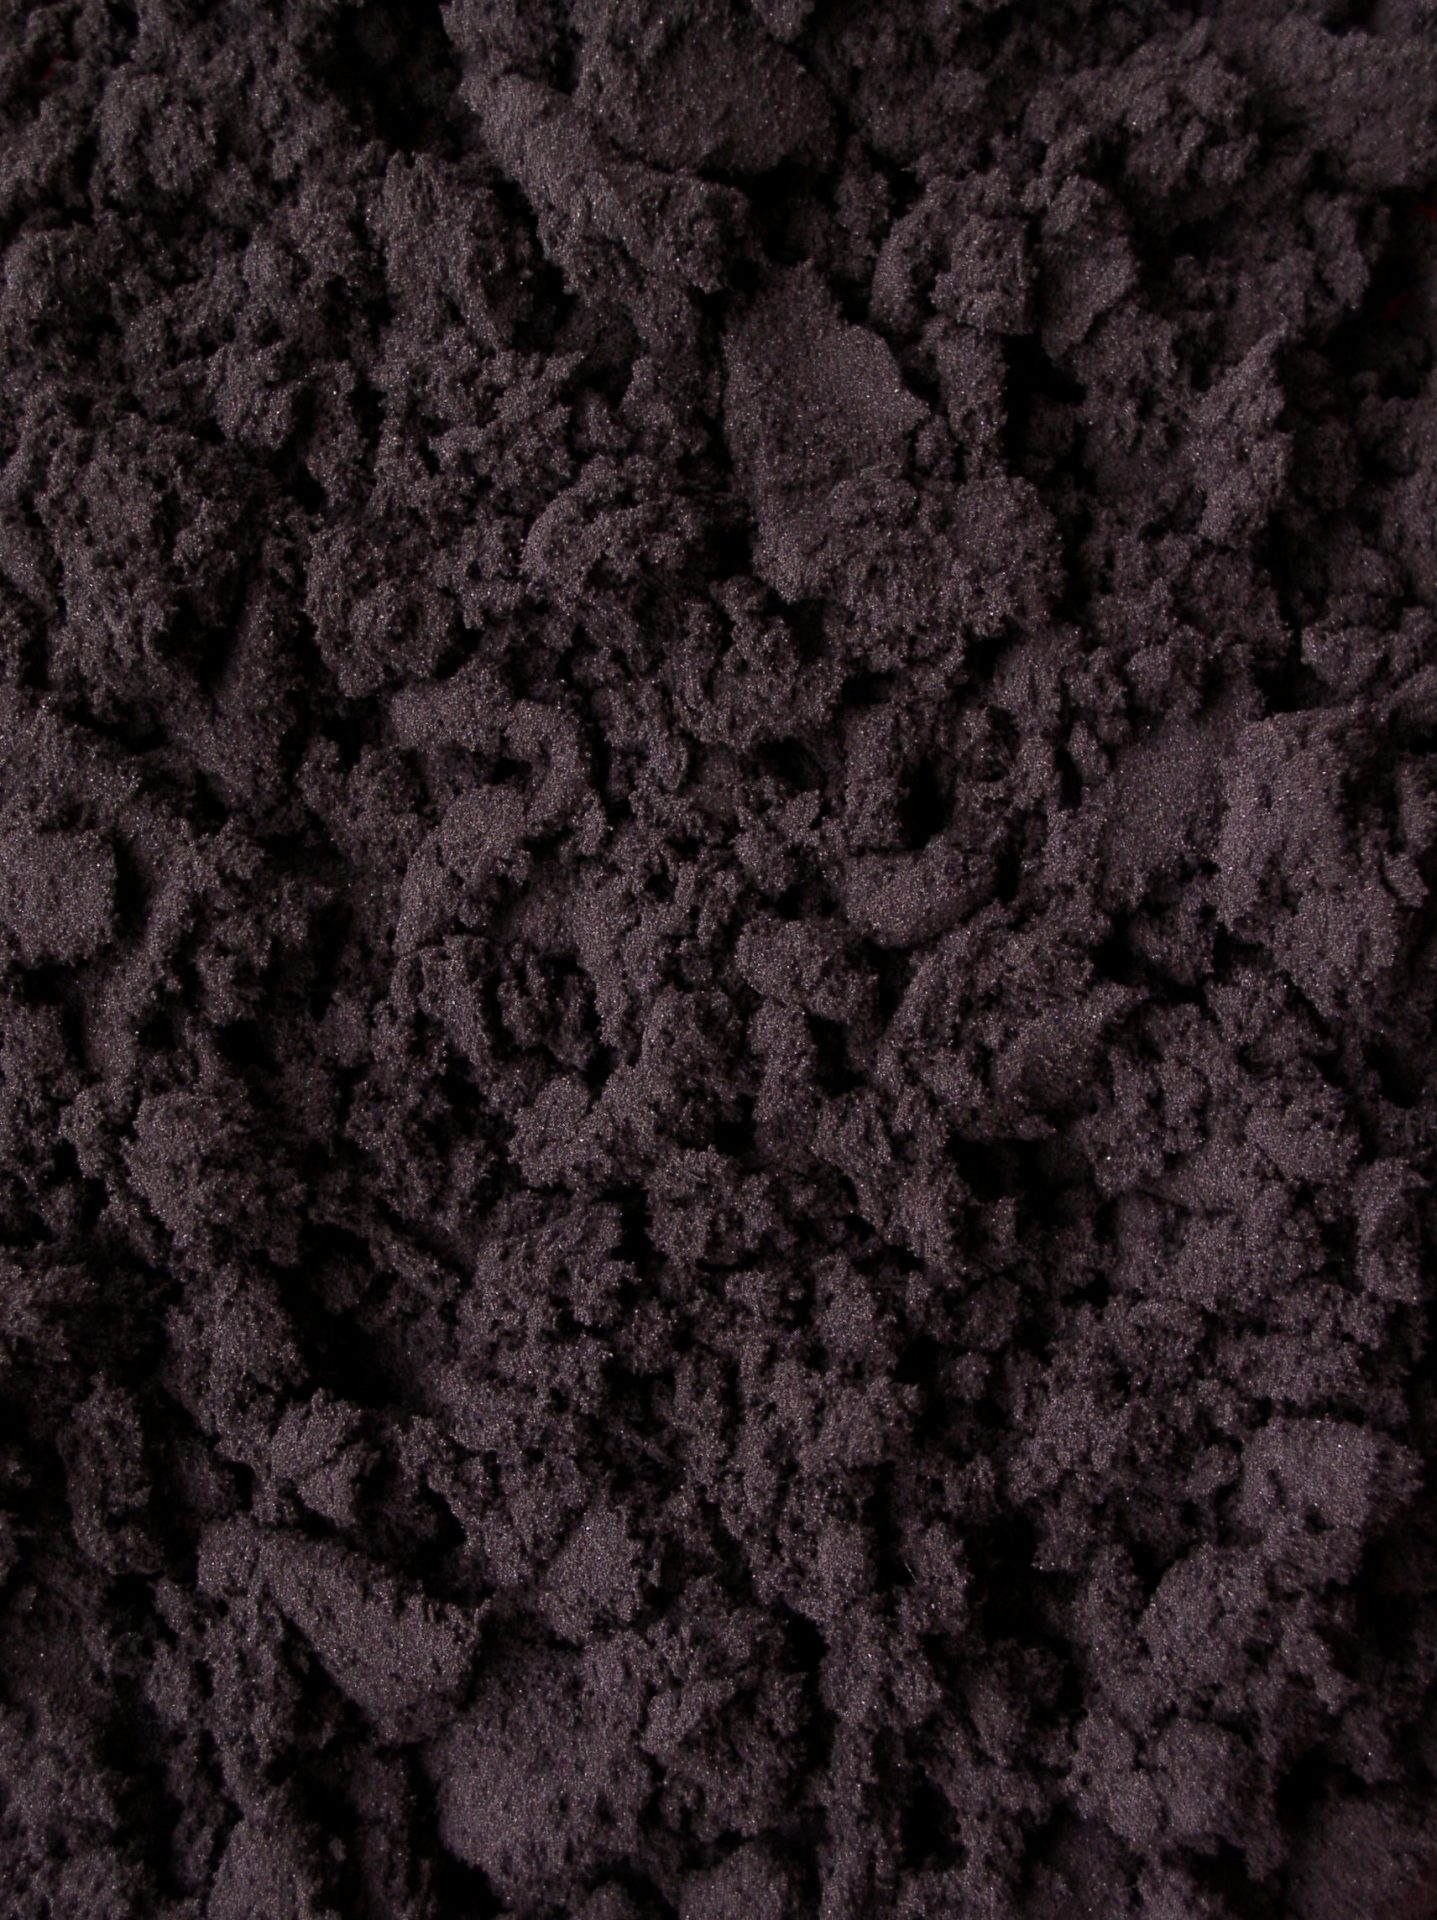 raw purple brown sludge